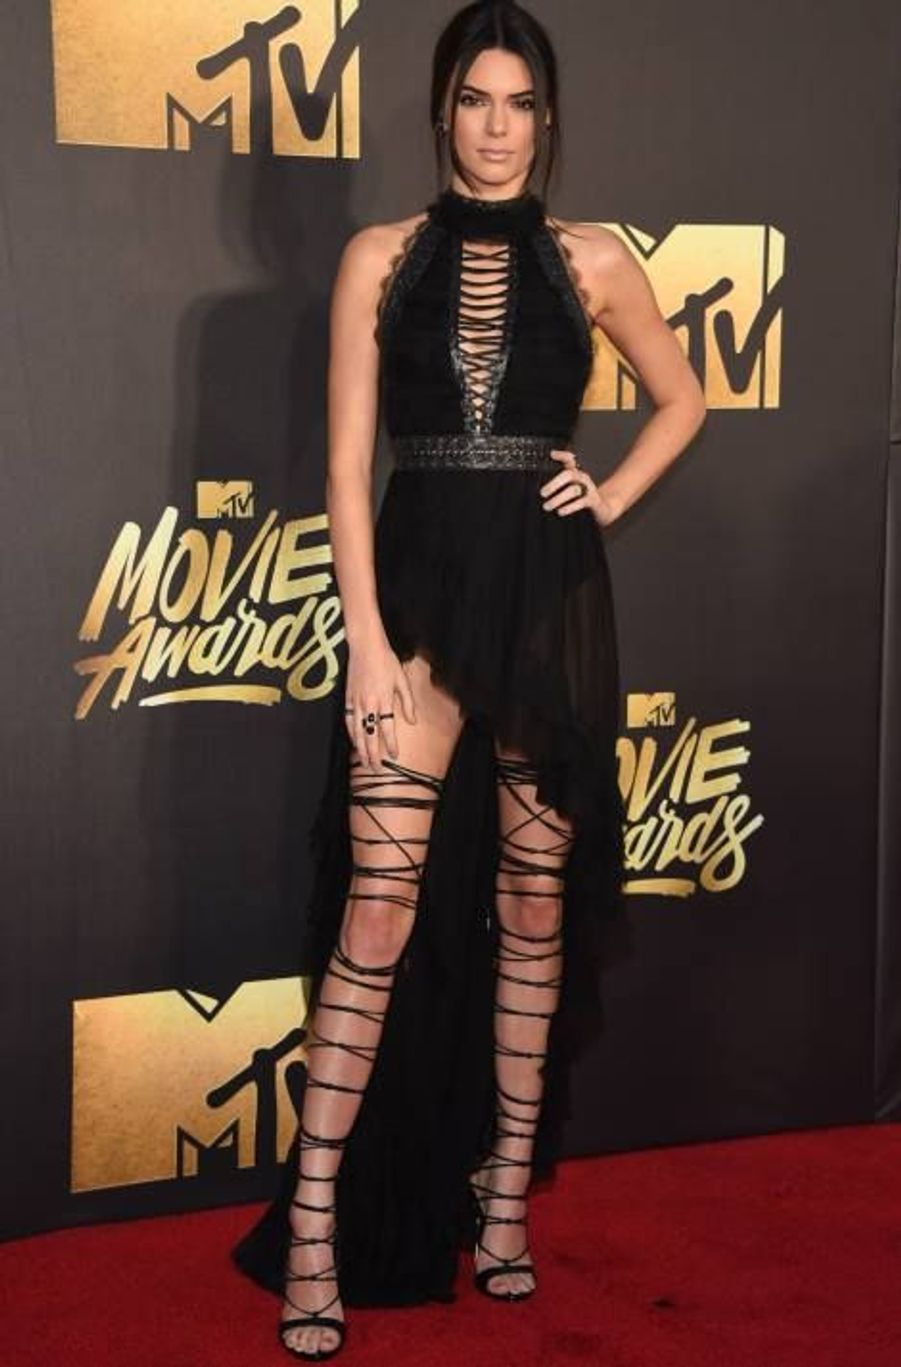 Les MTV Movie Awards célèbrent les stars